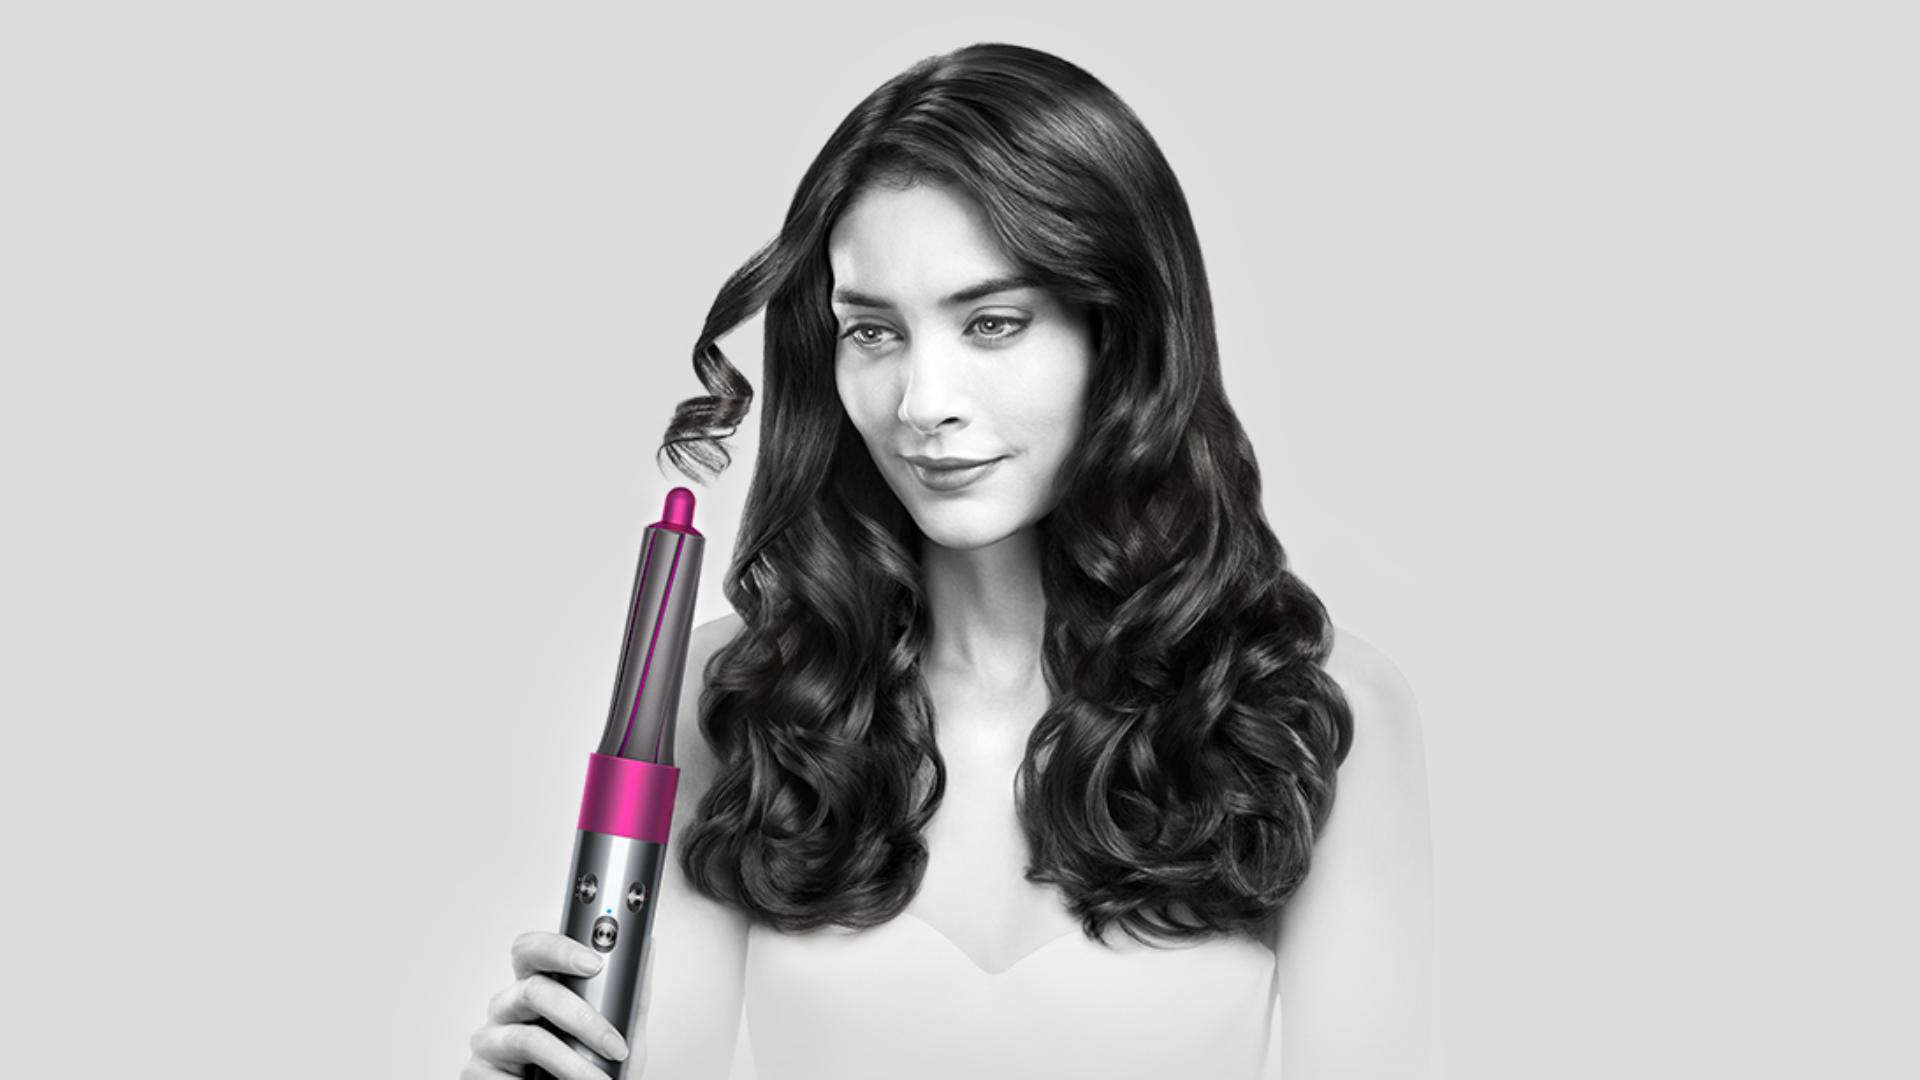 Model using Dyson Airwrap™ styler